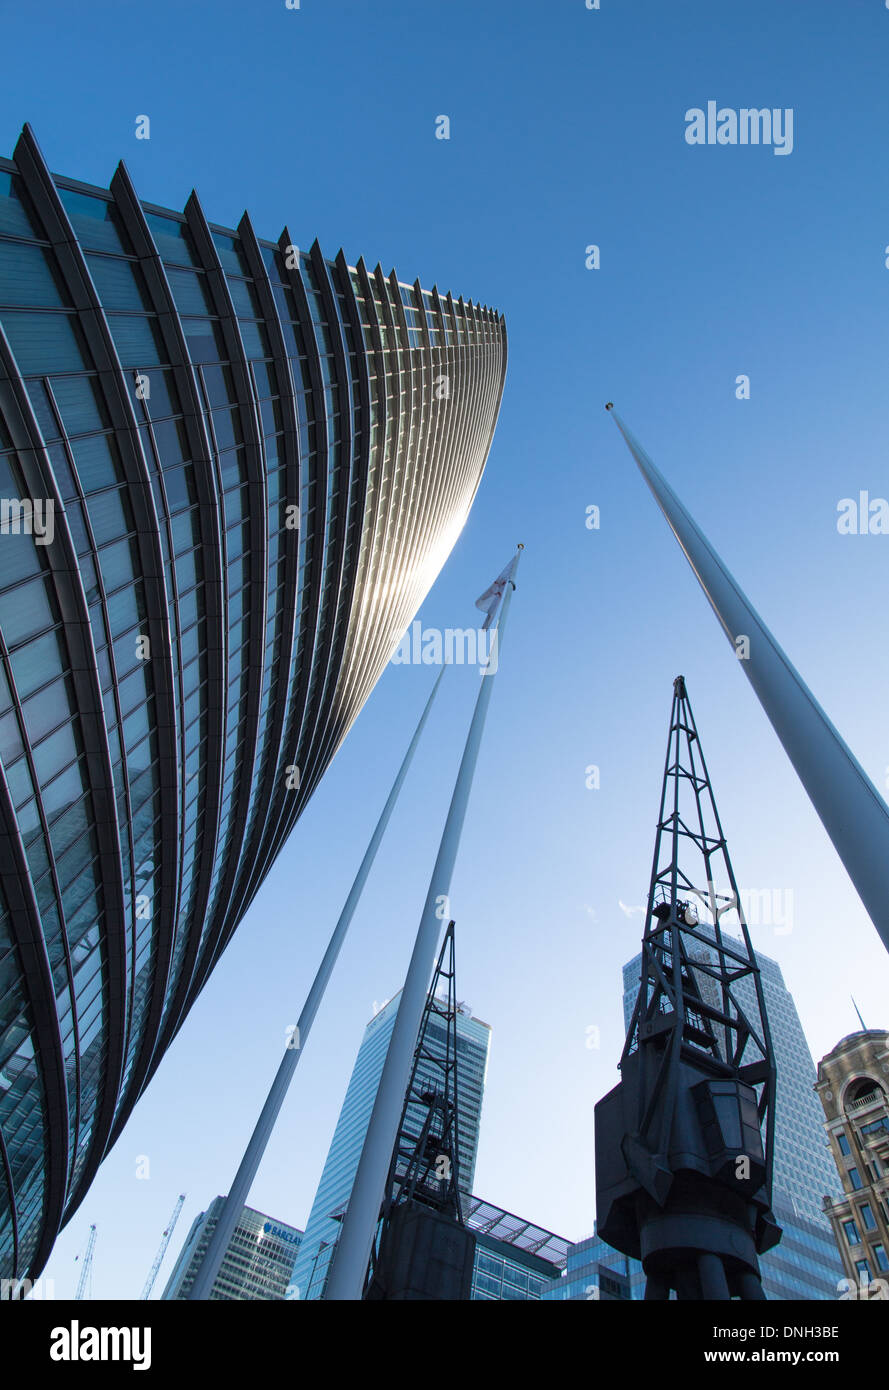 The Marriott Hotel Canary Wharf London Looking upwards next to flagpoles and docklands cranes - Stock Image